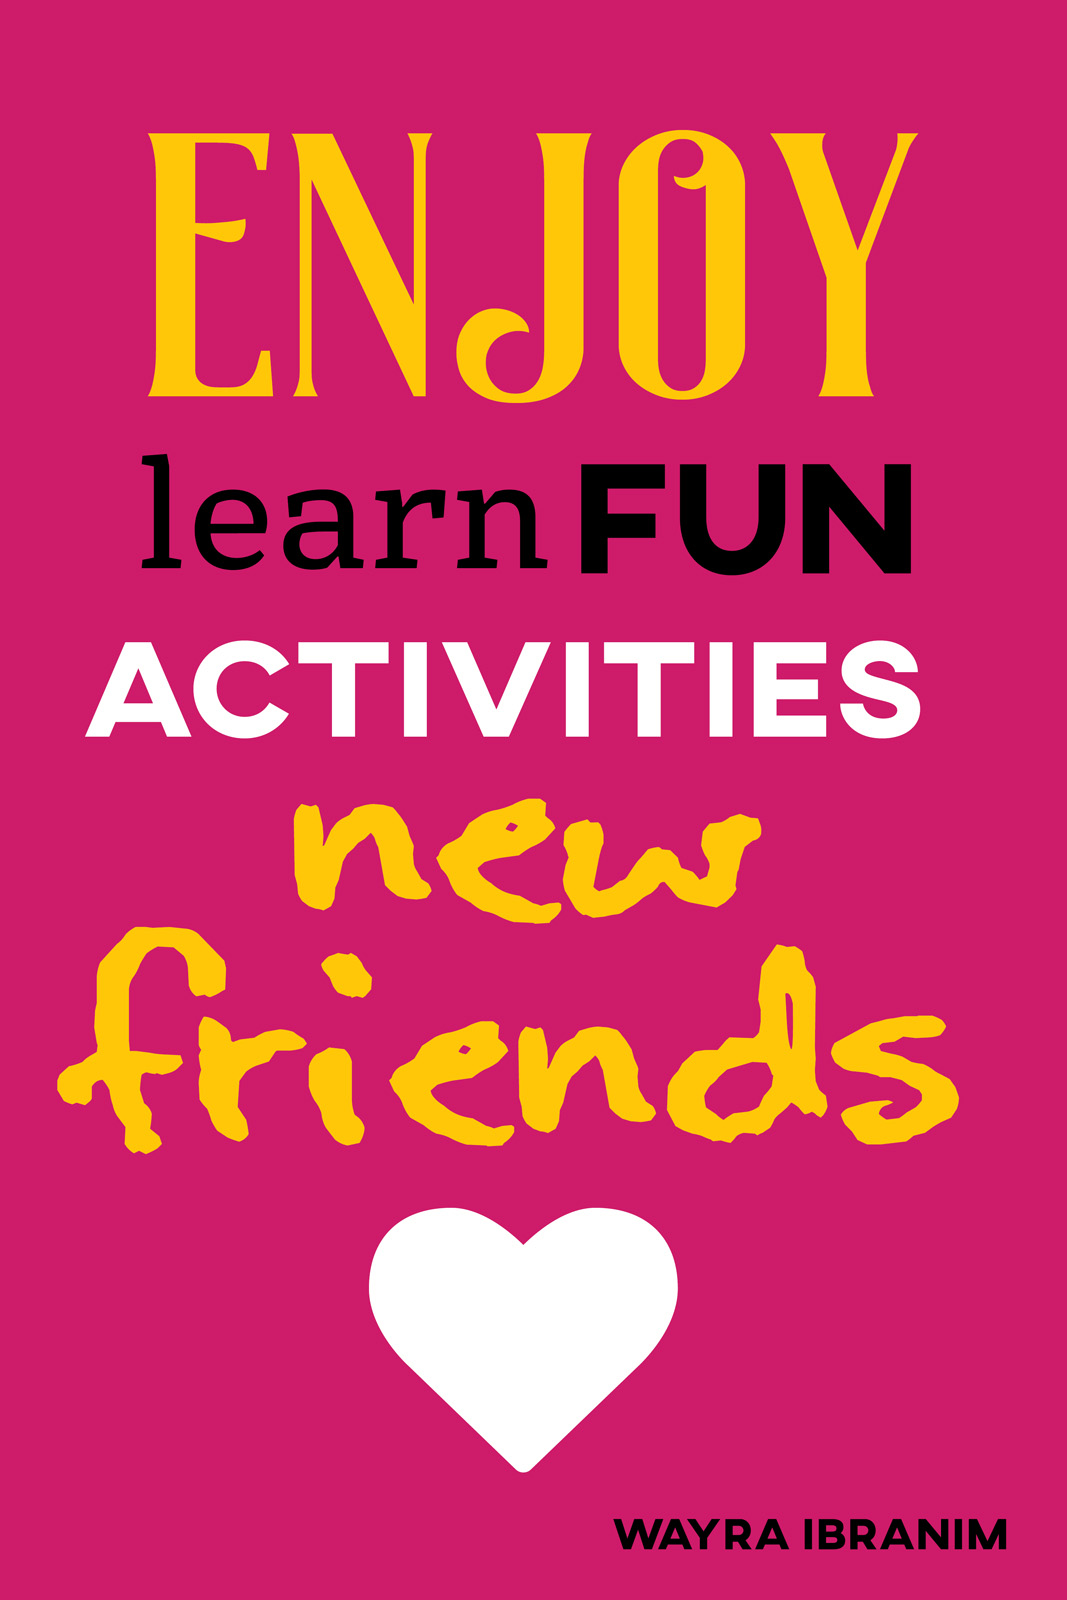 Enjoy, fun, learn, activities, new friends, happy